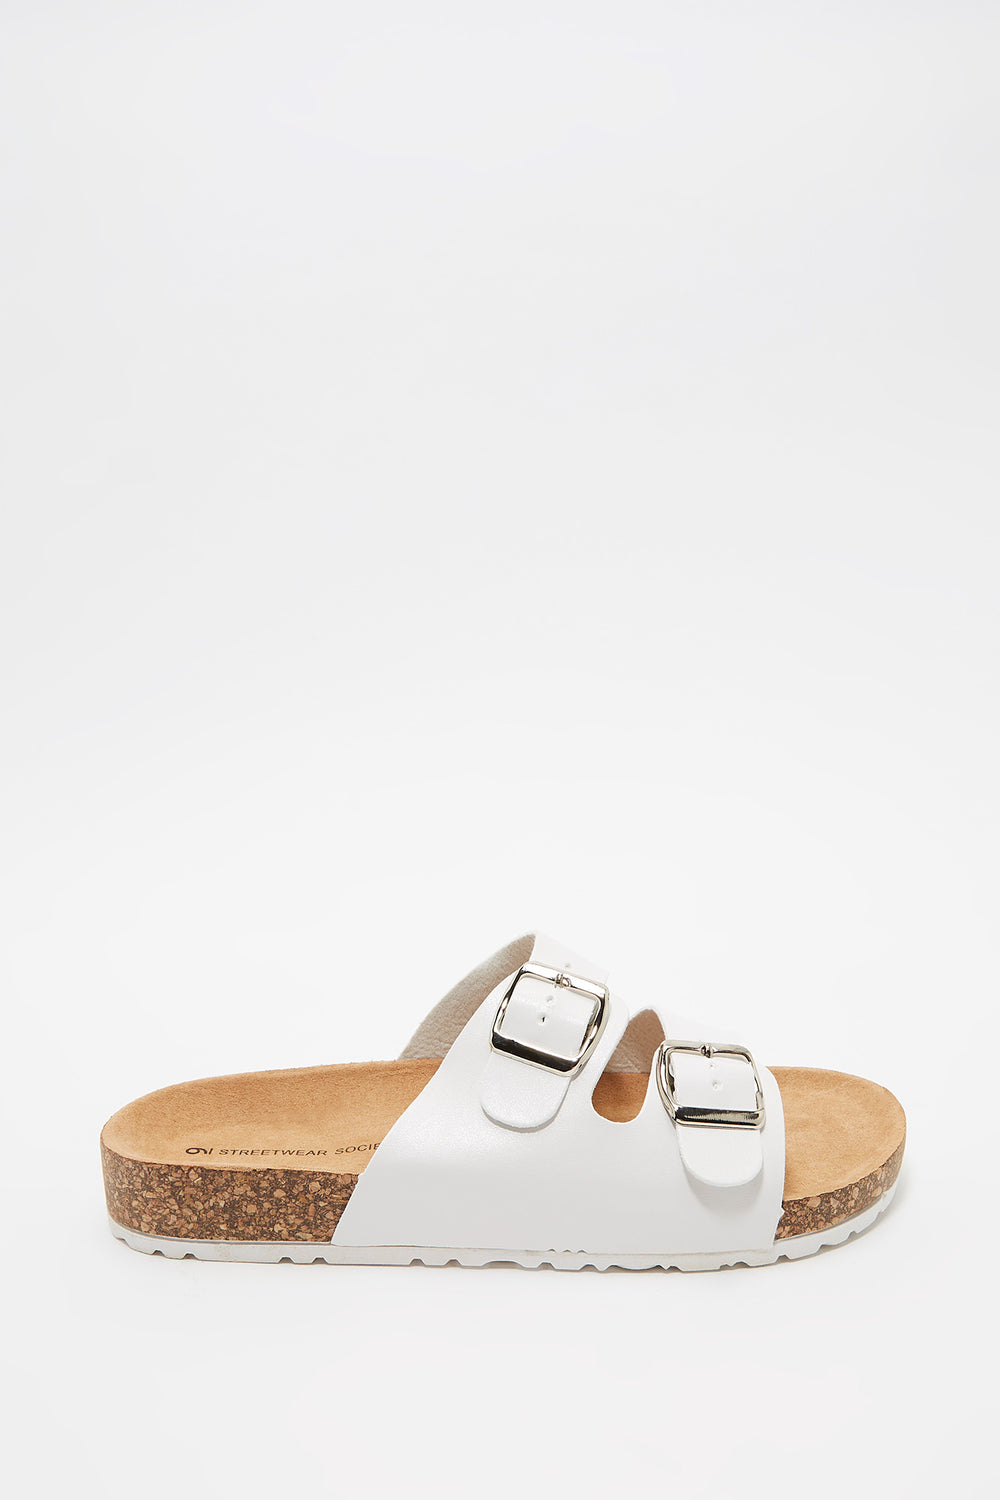 Dual Buckle Strap Cork Slide White